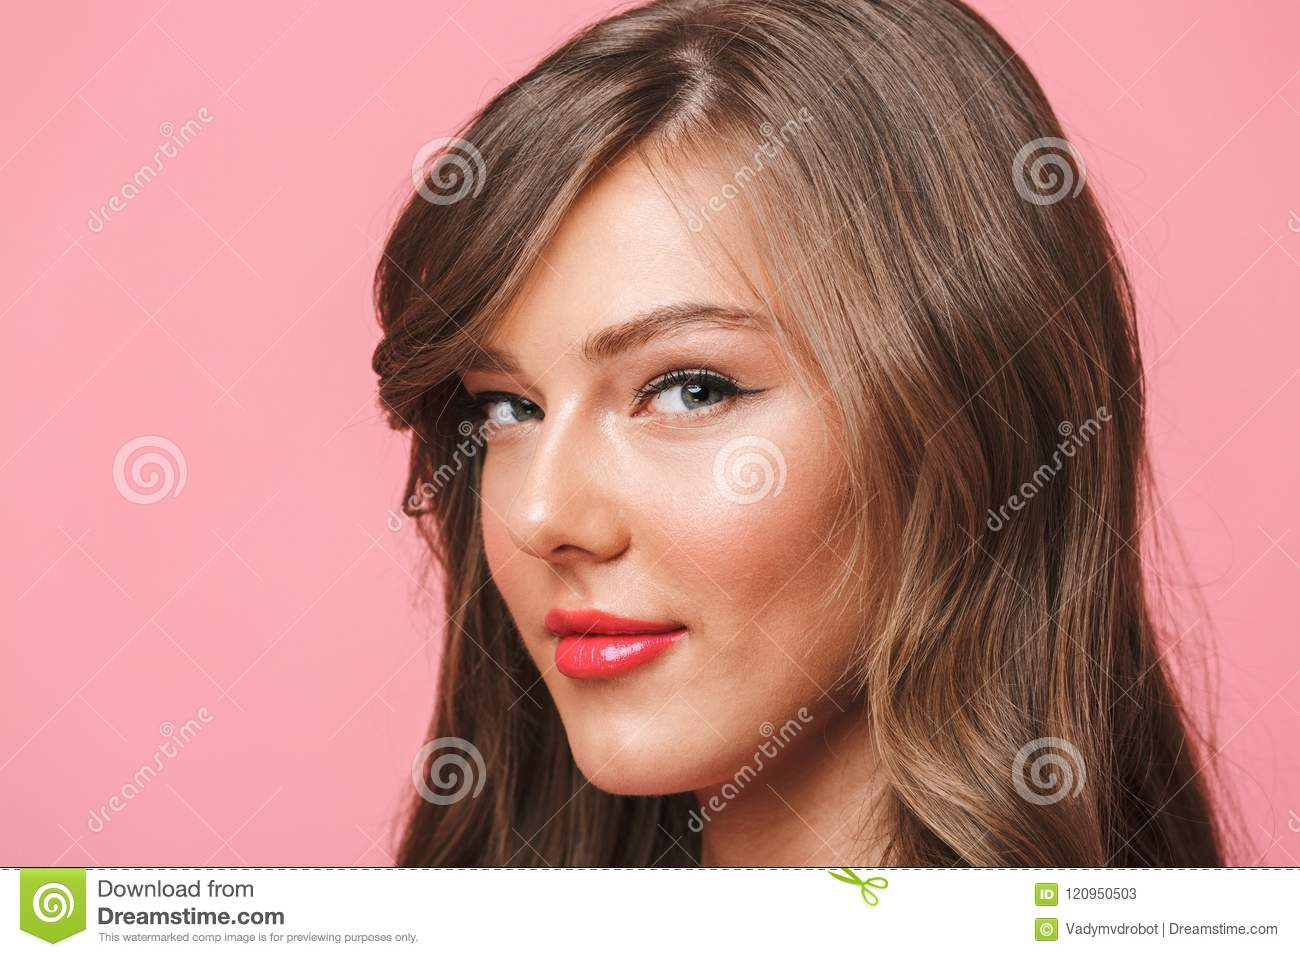 Image closeup of young european woman 20s with long curly hairstyle and evening makeup smiling at camera with seductive look isolated over pink background